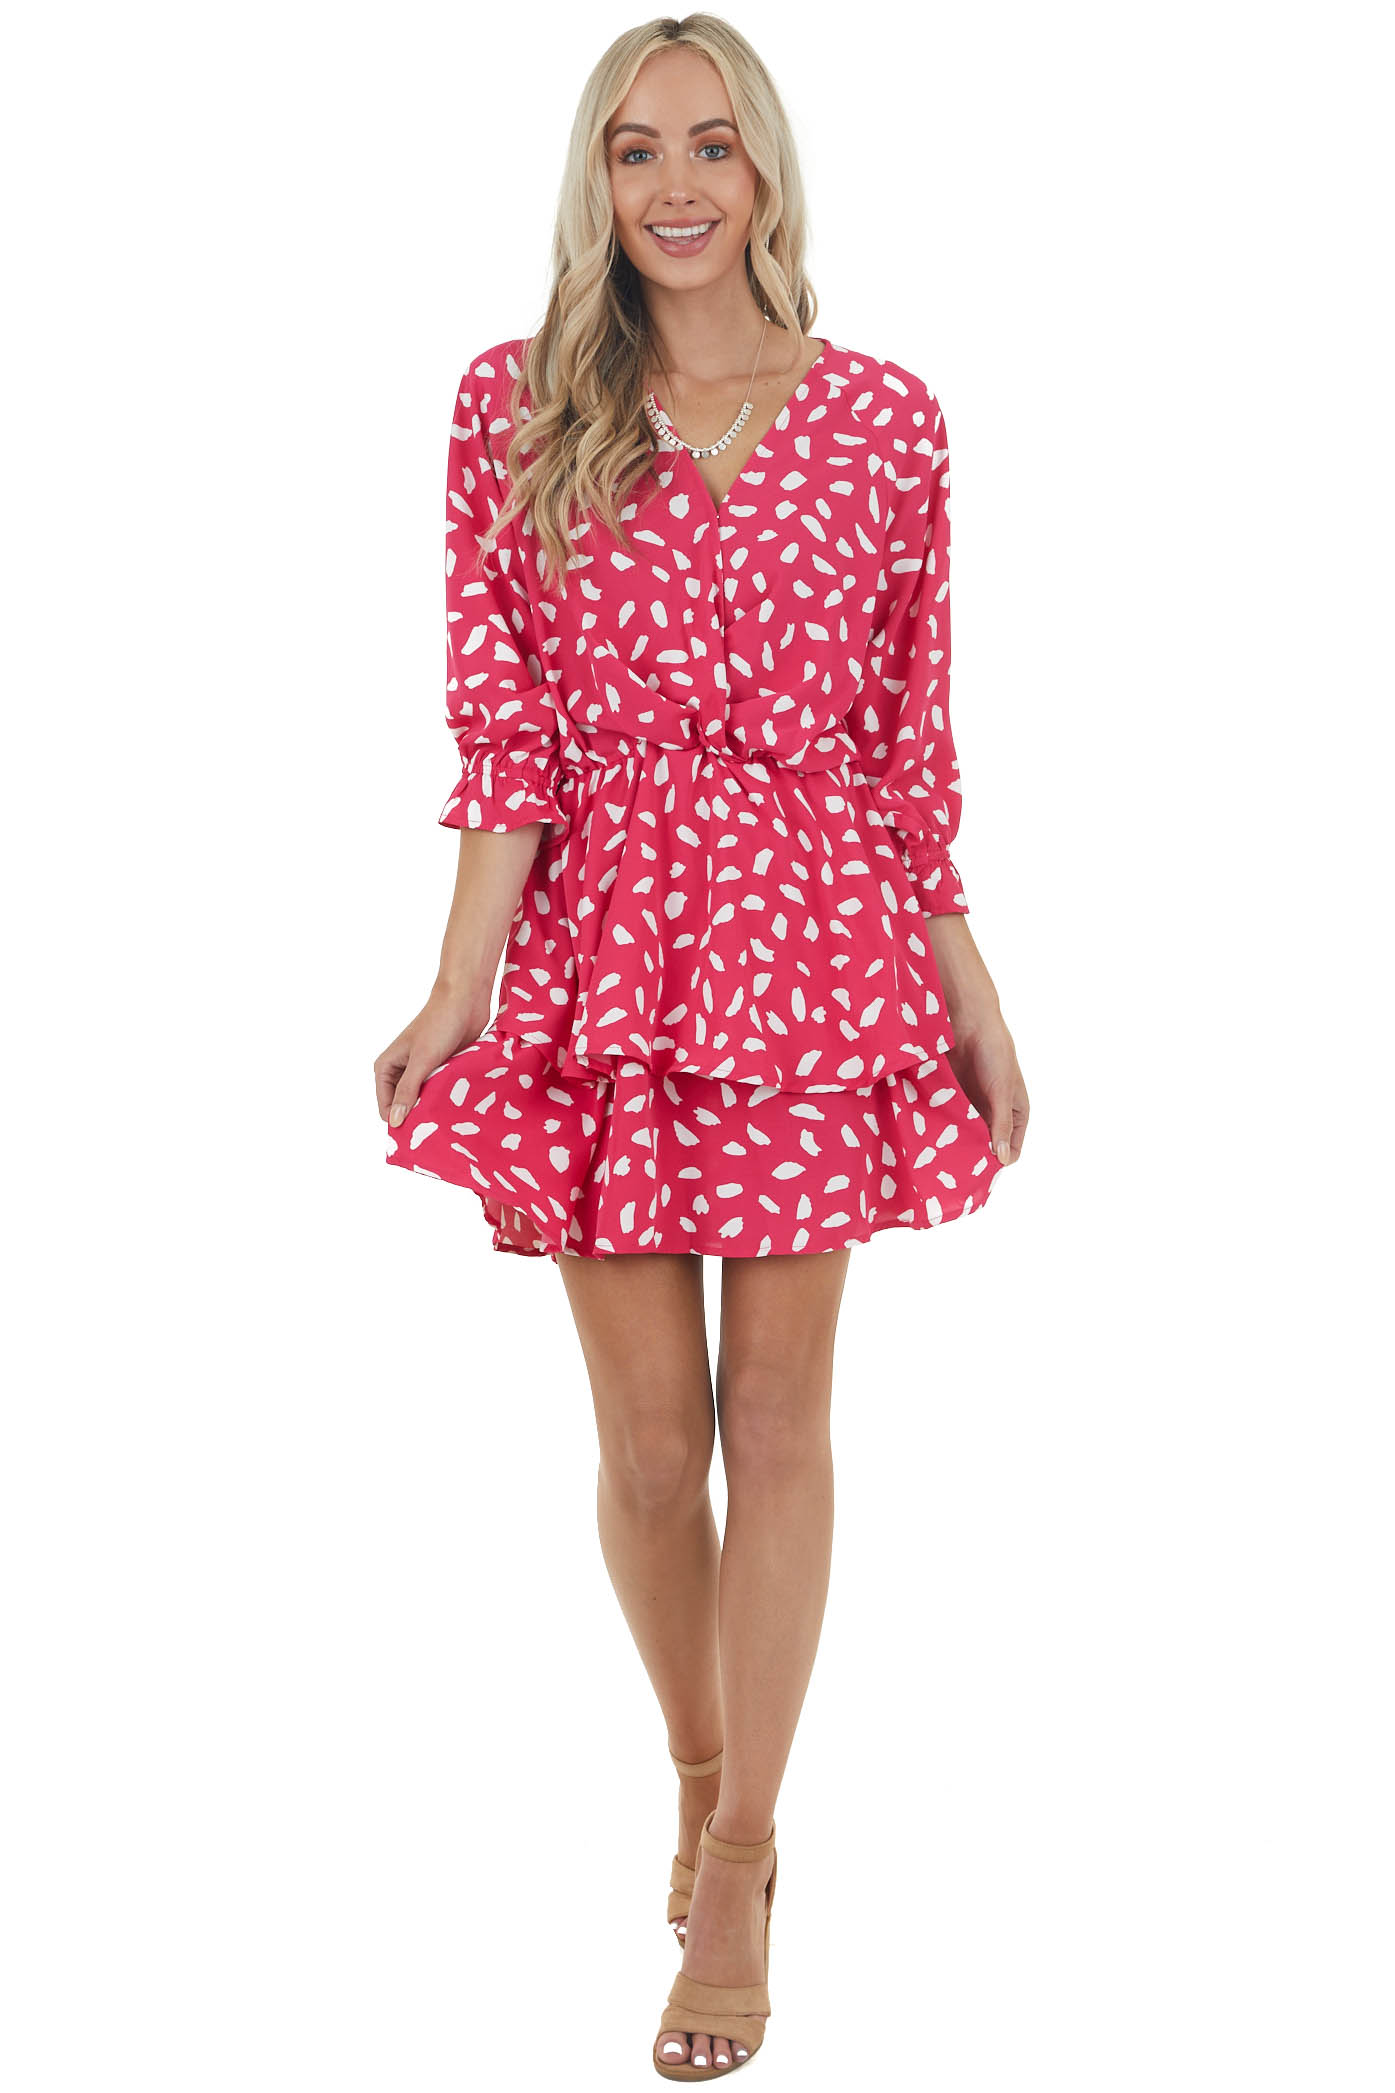 Hot Pink Cheetah Surplice Ruffle Dress with Bubble Sleeves